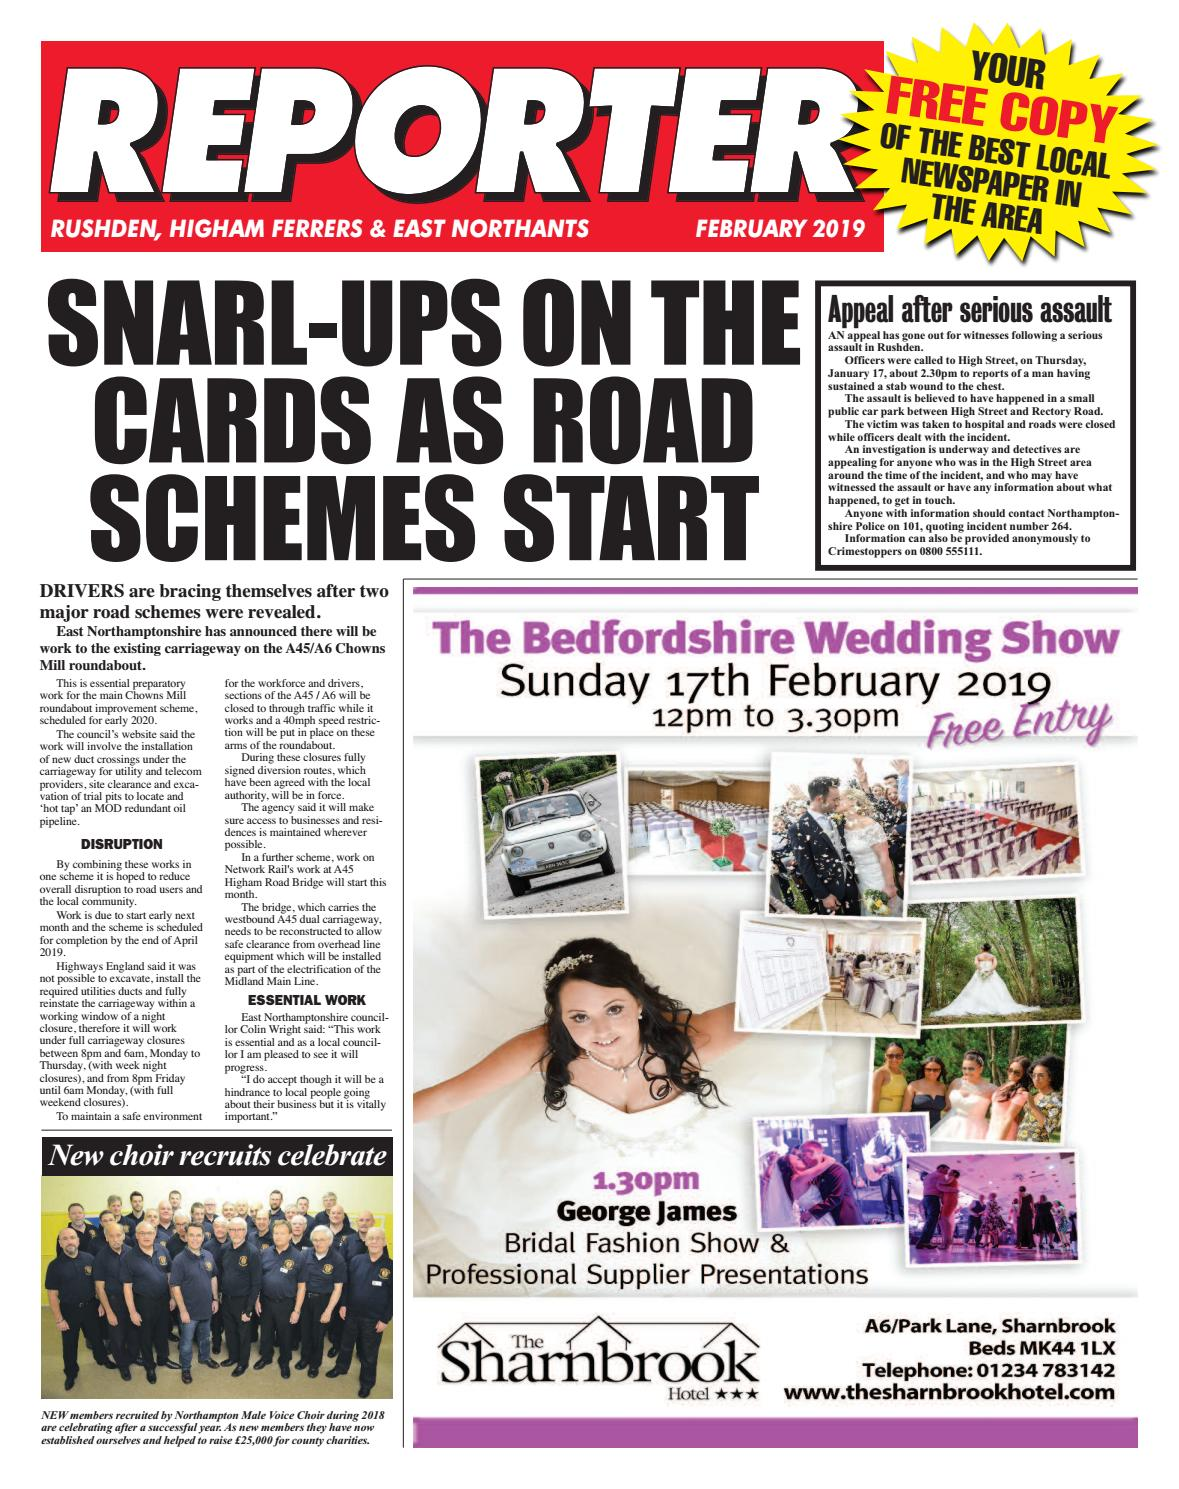 East Northants Reporter February 2019 by Rosetta Publishing